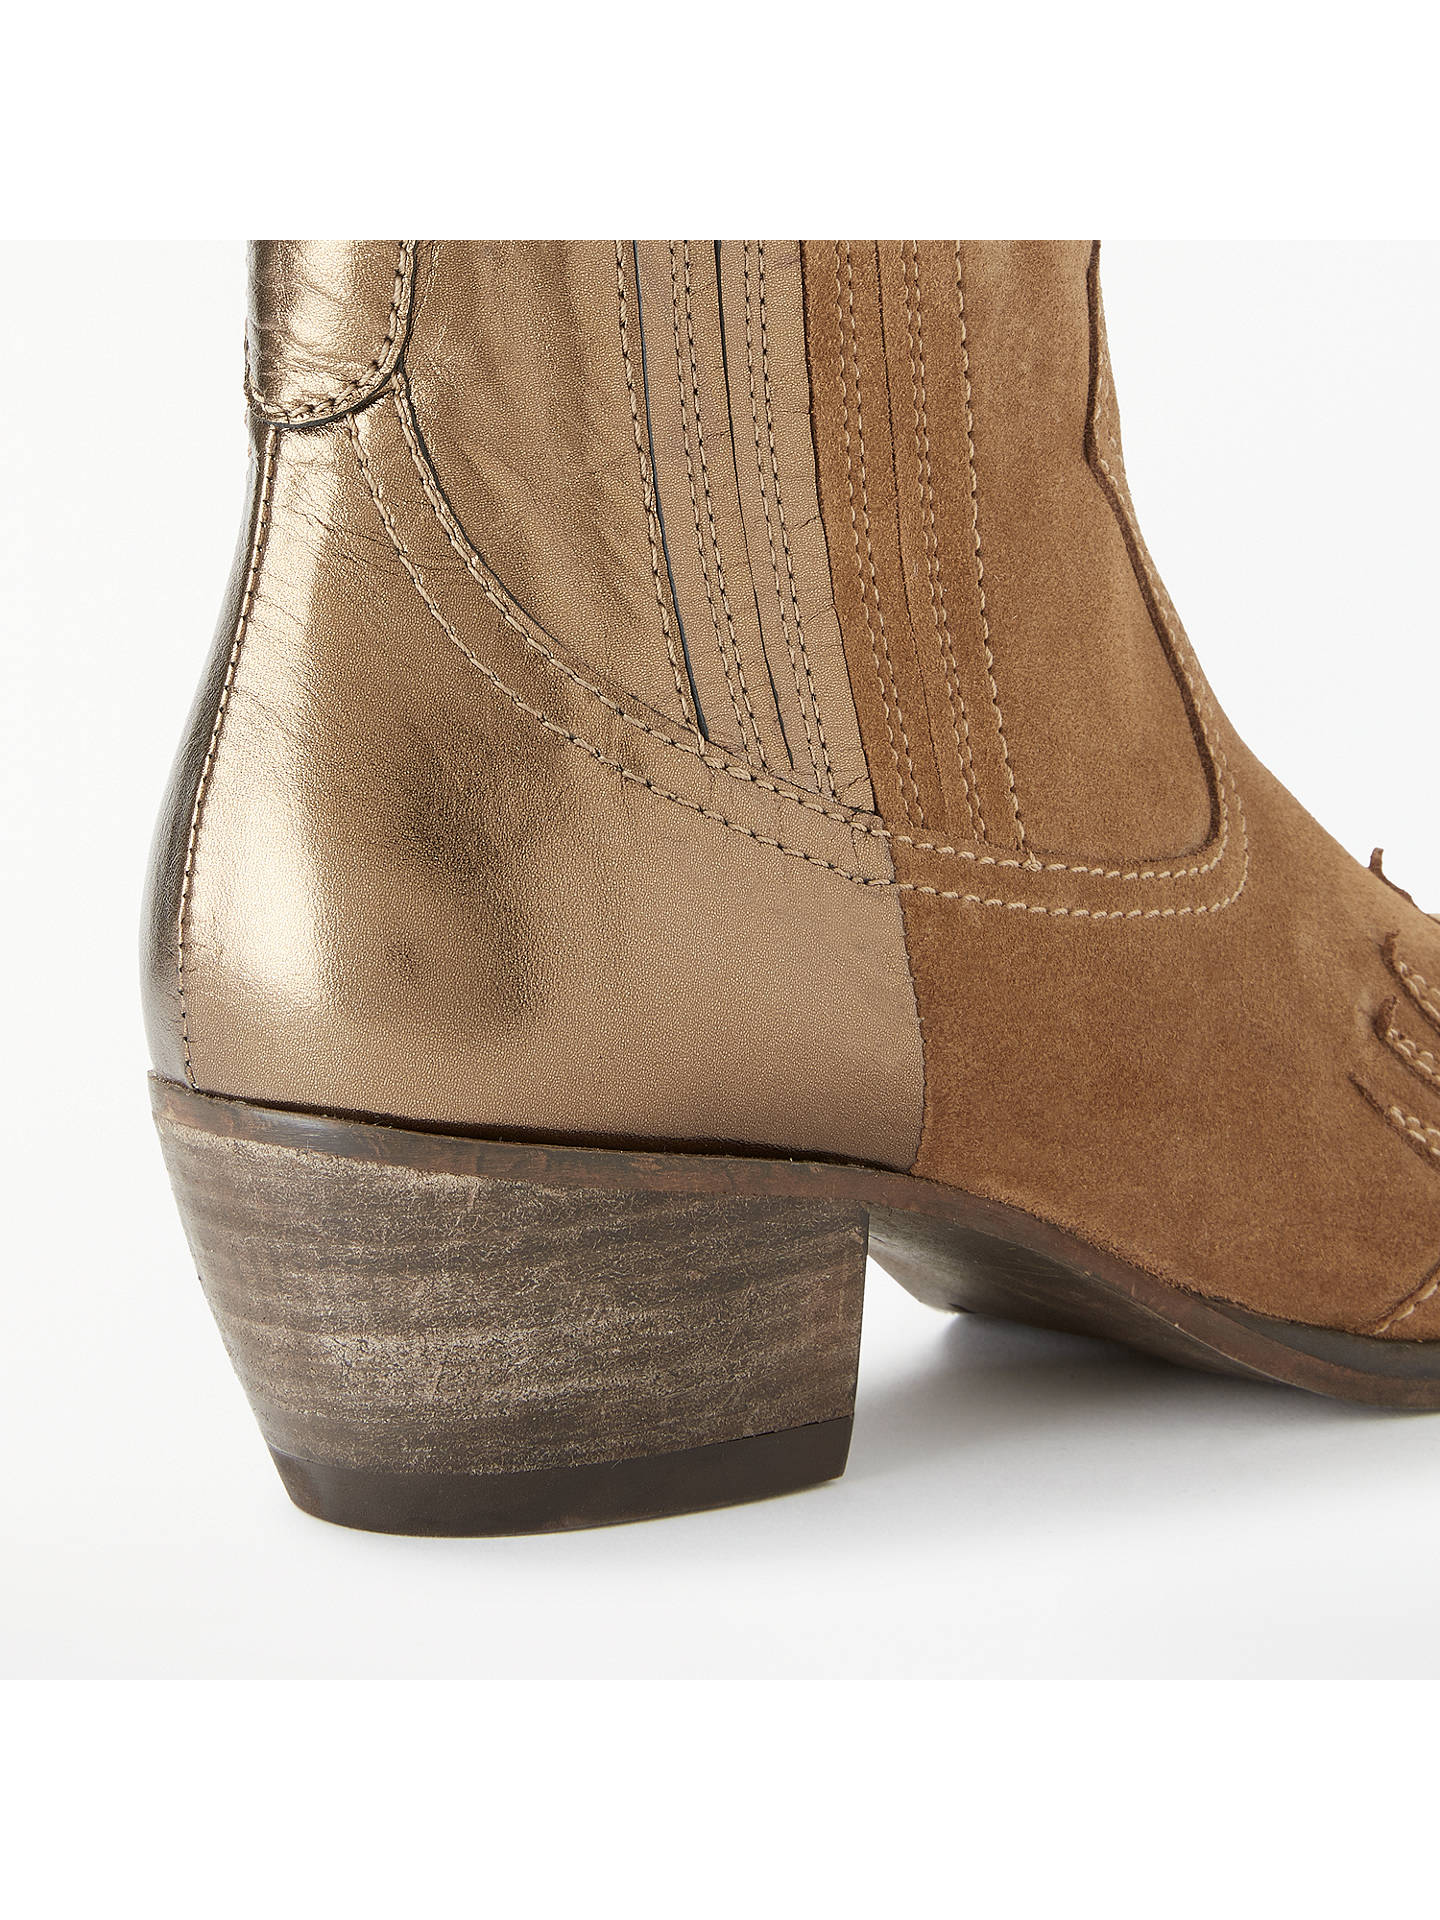 BuyAND/OR Odanda Two Tone Western Boots, Brown Suede/Leather, 8 Online at johnlewis.com